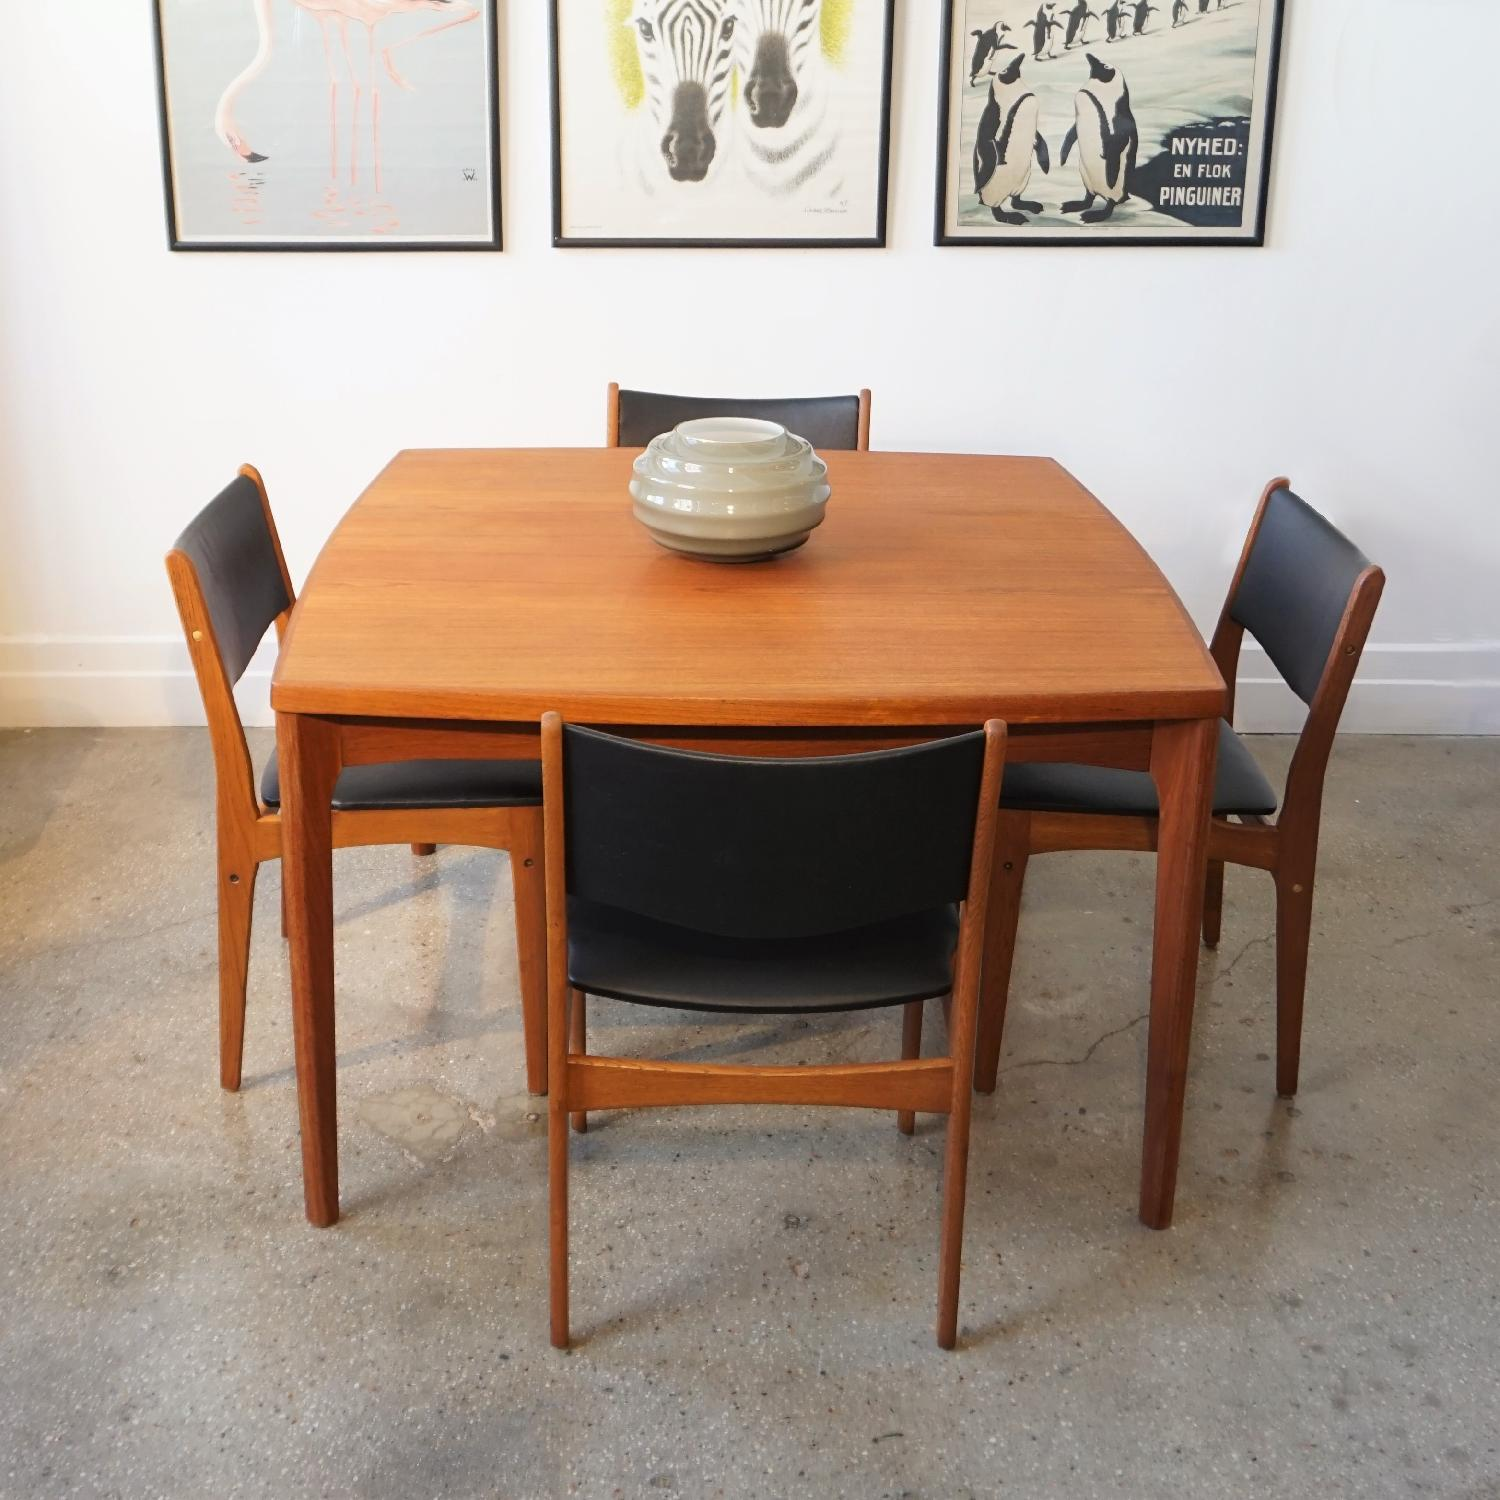 Henning Kjrnulf Extendable Dining Table - image-4